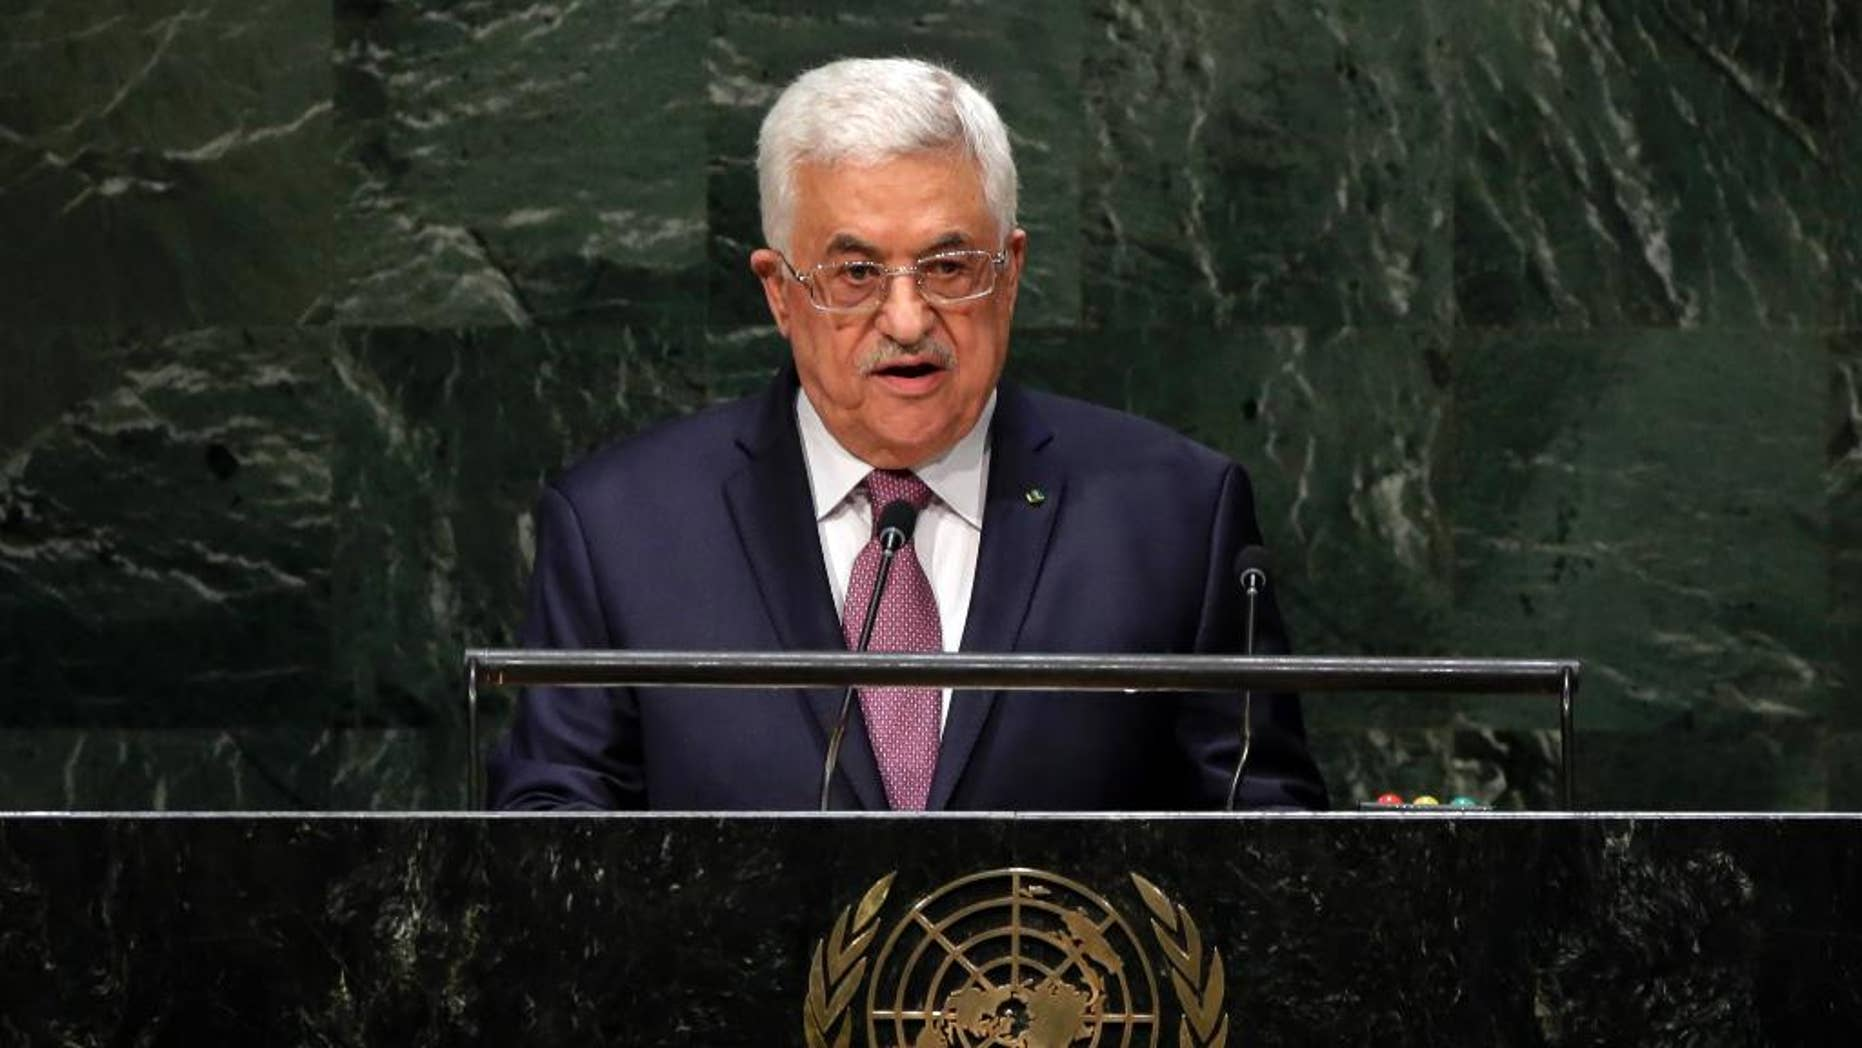 FILE - In this Friday, Sept. 26, 2014, file photo, Palestinian President Mahmoud Abbas addresses the 69th session of the United Nations General Assembly at U.N. headquarters. The U.N. has accepted Palestine's request join the International Criminal Court, setting April 1 as the starting date and clearing the way for potential war crimes investigations of Israel over its settlement building on occupied lands and a 2014 war in Gaza that killed hundreds of civilians.  (AP Photo/Richard Drew, File)